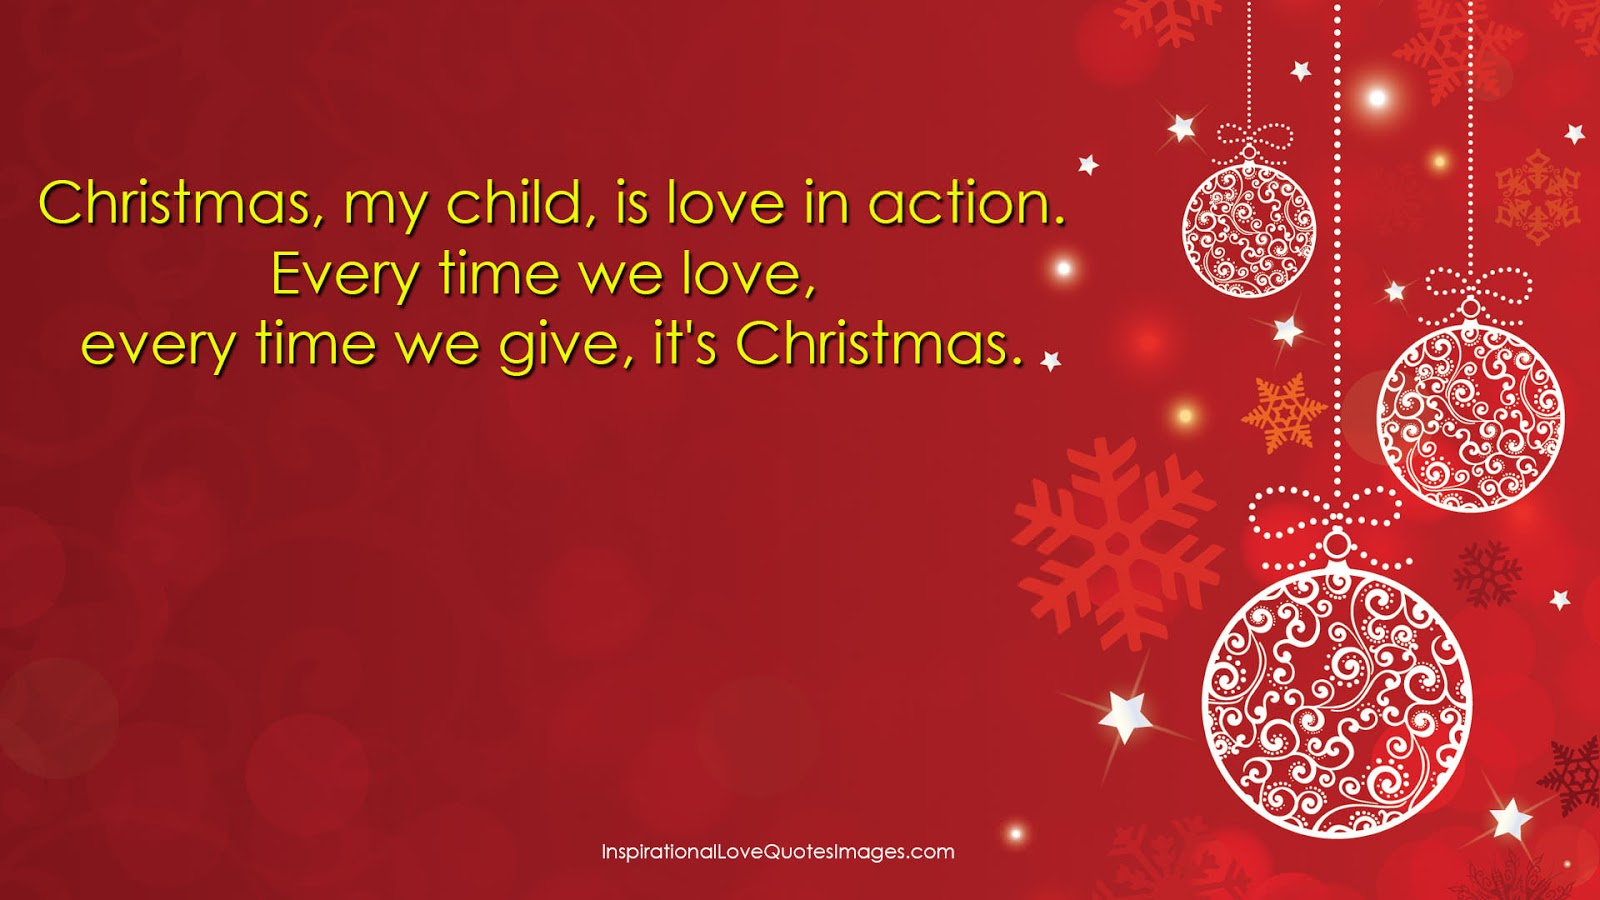 100 awesome merry christmas images wallpapers pictures for Christmas quotes and sayings inspirational